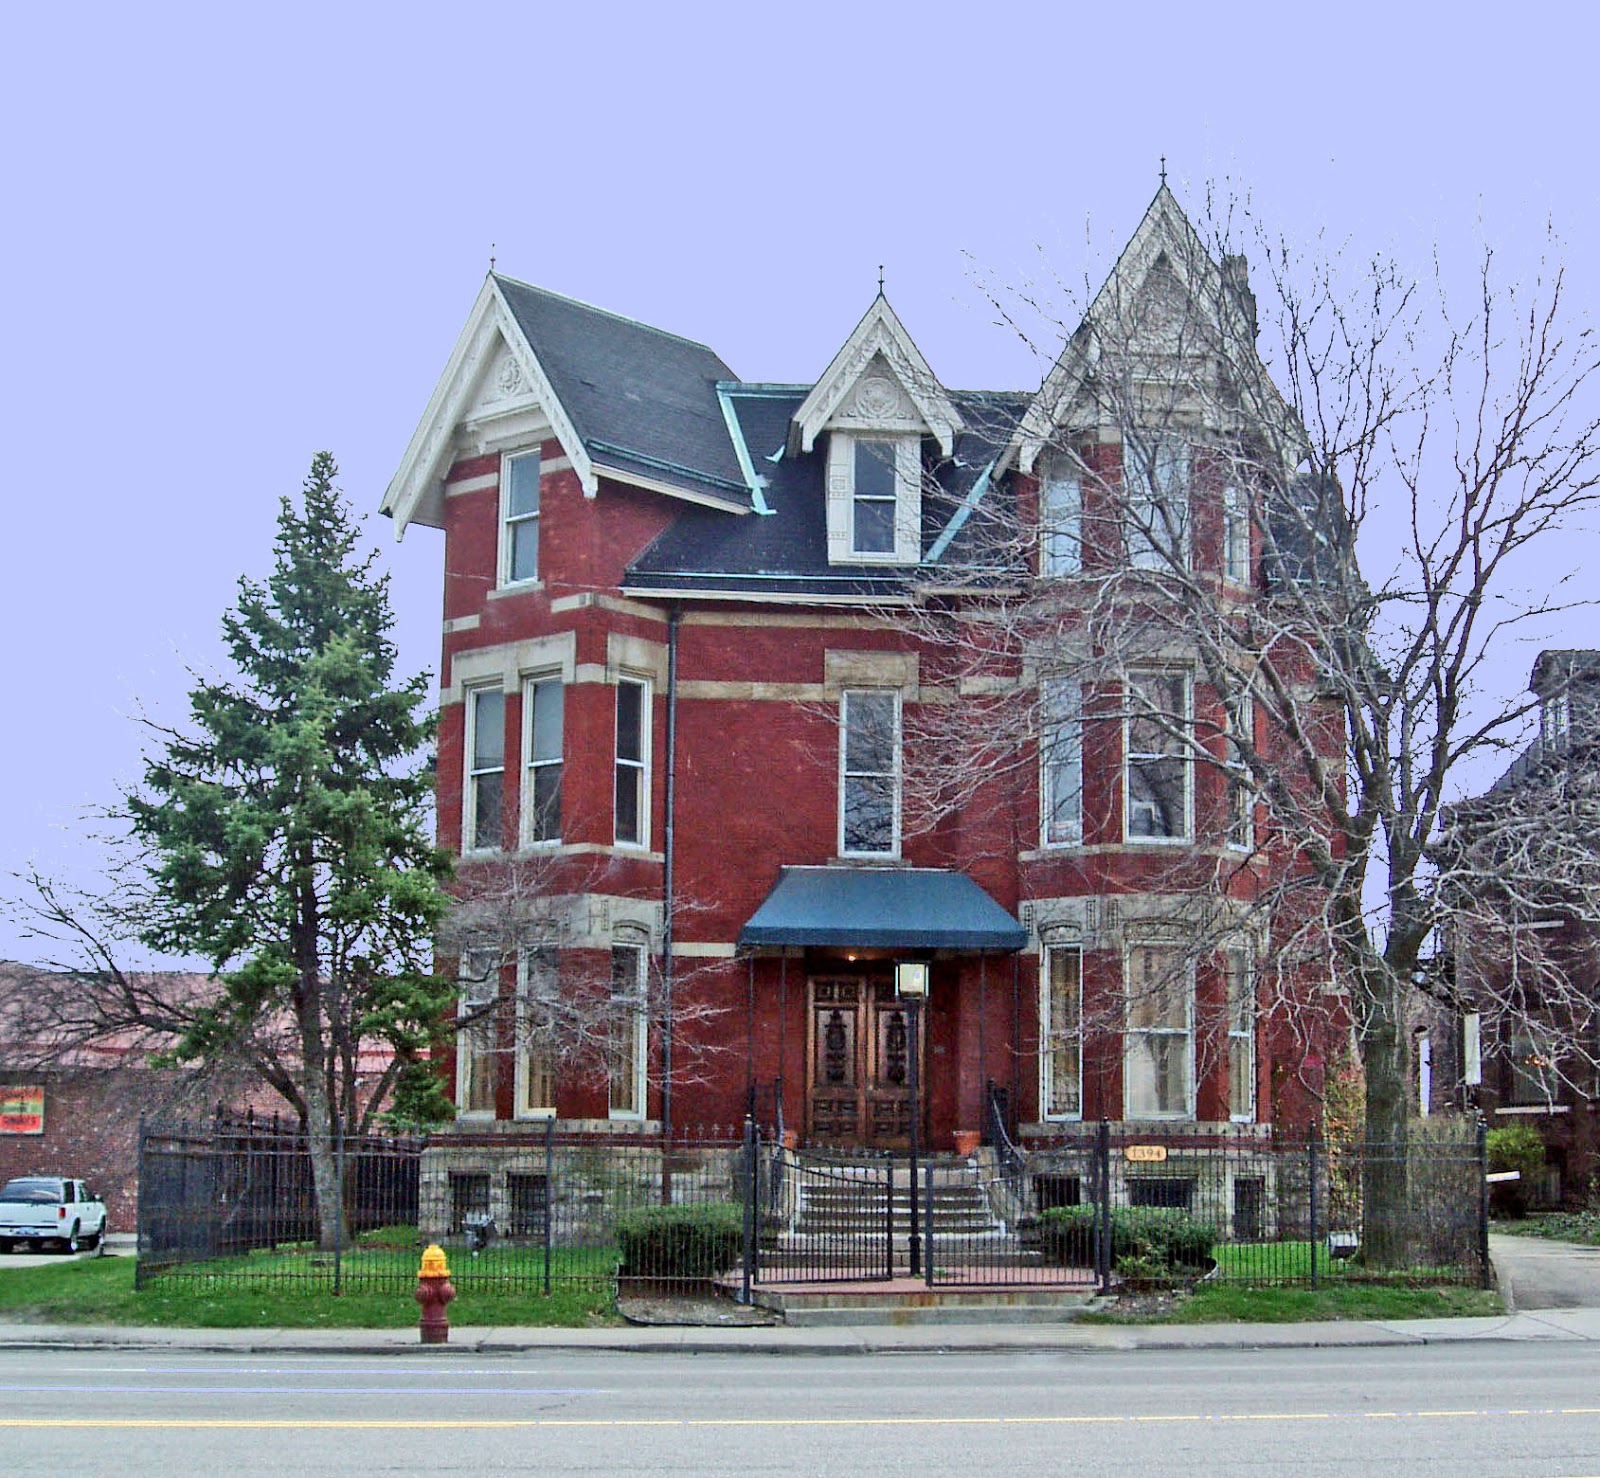 RETRO KIMMER'S BLOG: HISTORIC DETROIT LANDMARK HOMES ON